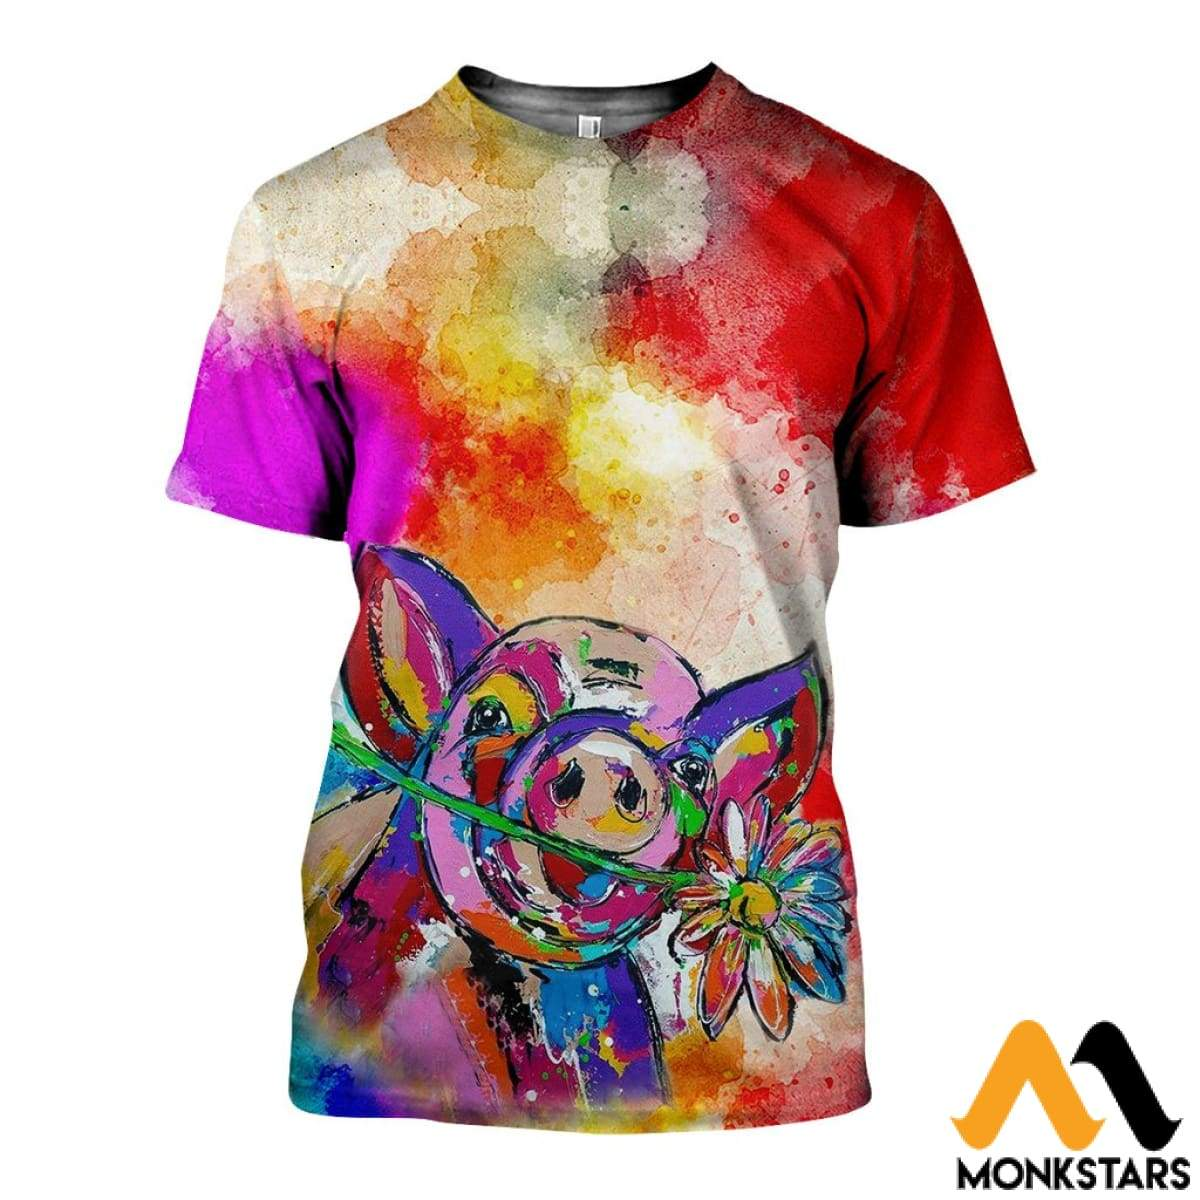 1552c943dcb0 3D All Over Printed Beautiful Pig Shirts And Shorts T-Shirt   Xs Clothes